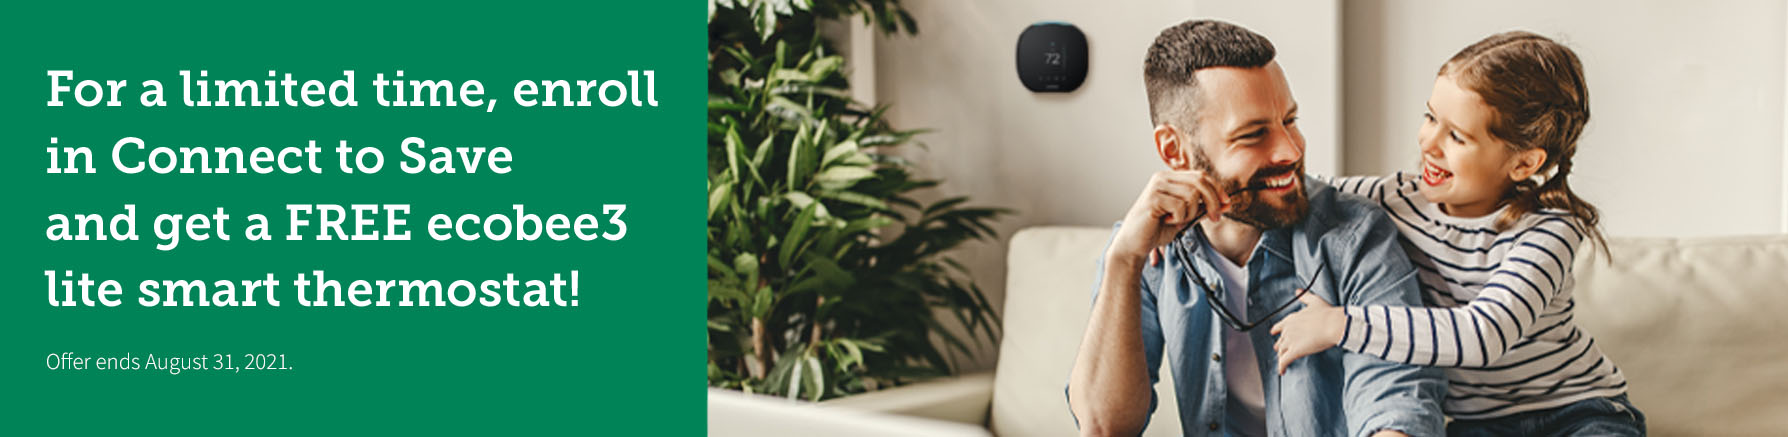 Homepage Carousel Banner - NCEMC - Ecobee Promotion